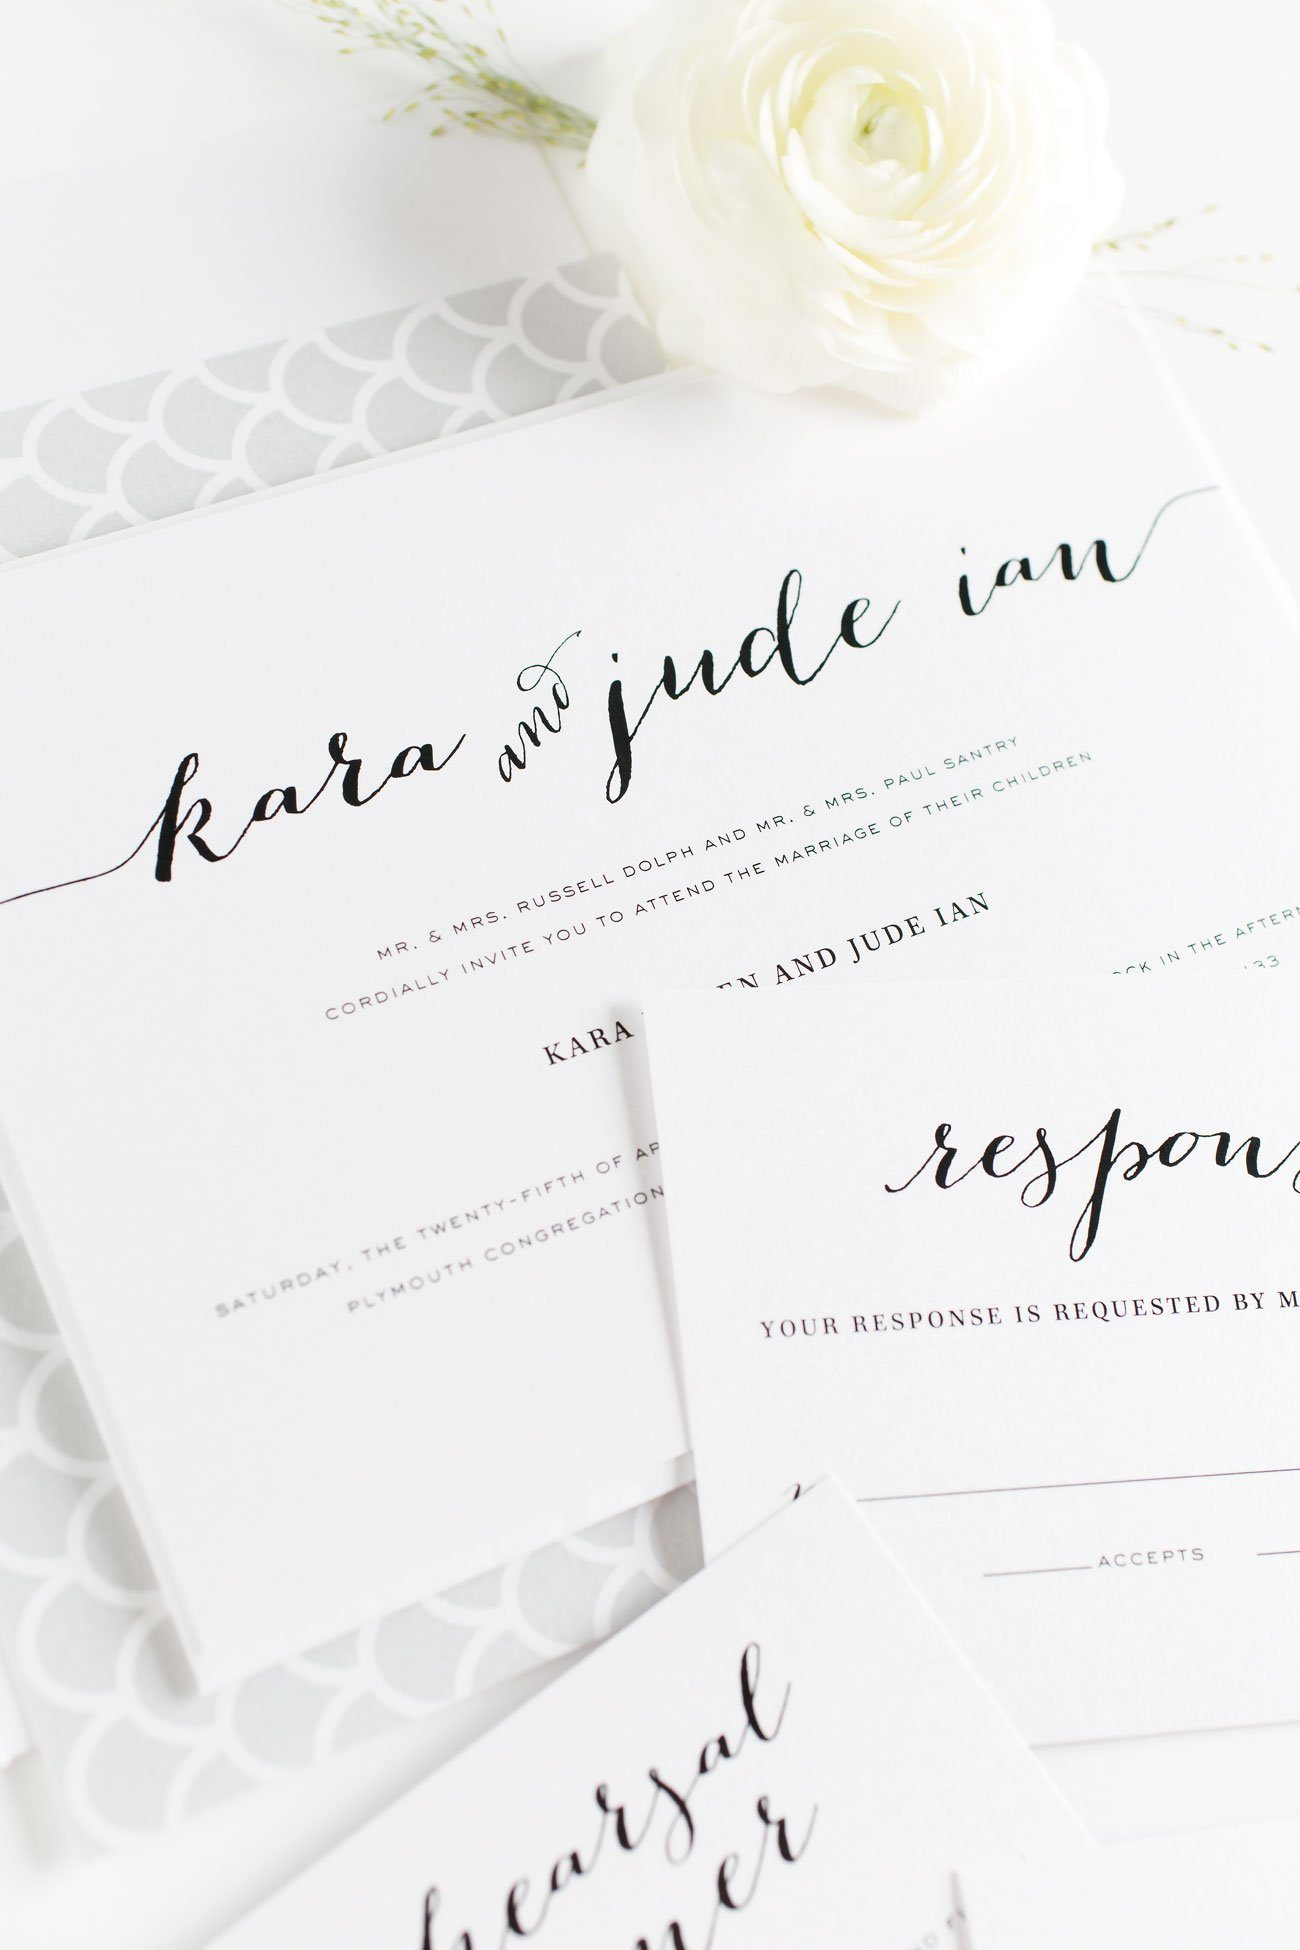 Gray Wedding Invitations with scallops